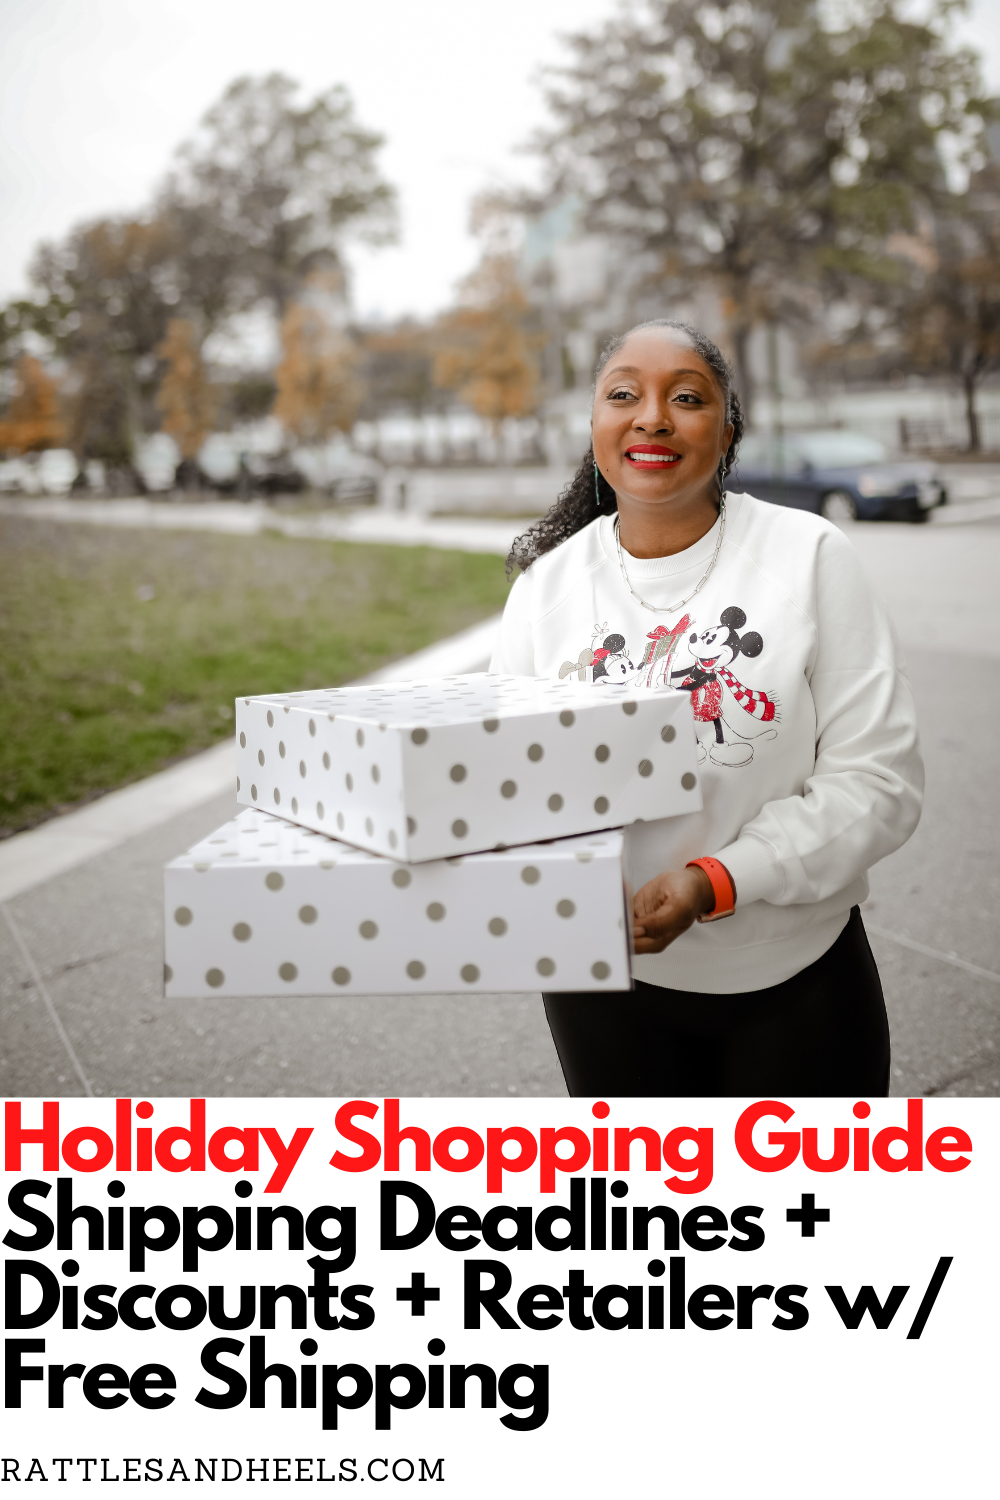 2020 Online Holiday Shopping Guide + Shipping Deadlines